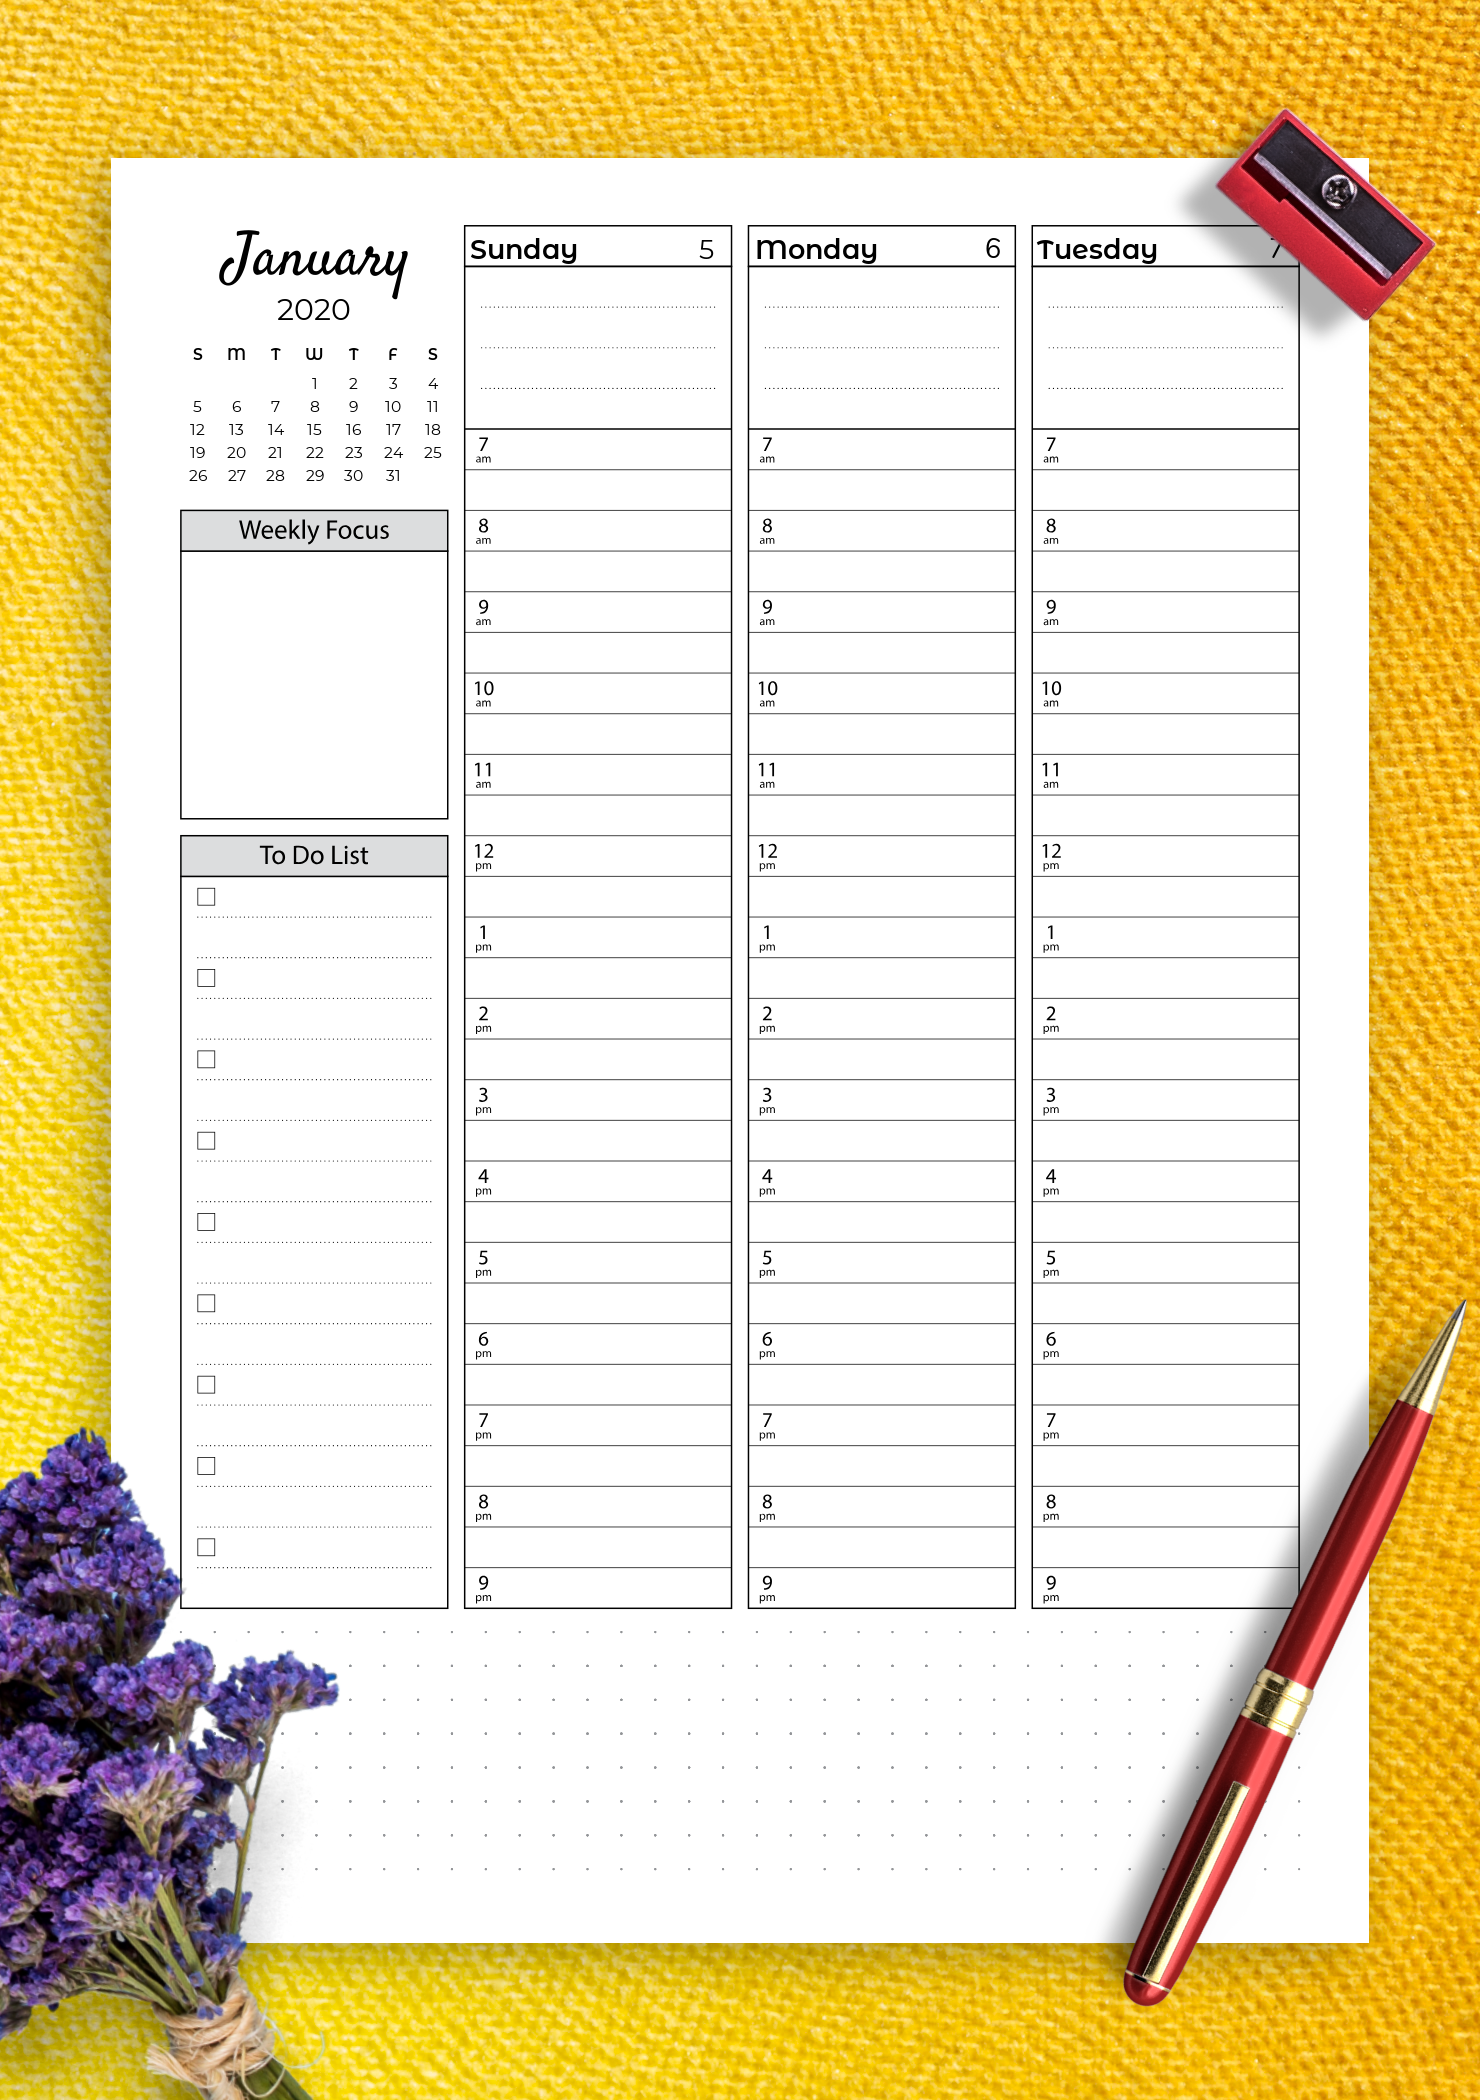 Download Printable Weekly Hourly Planner With Todo List